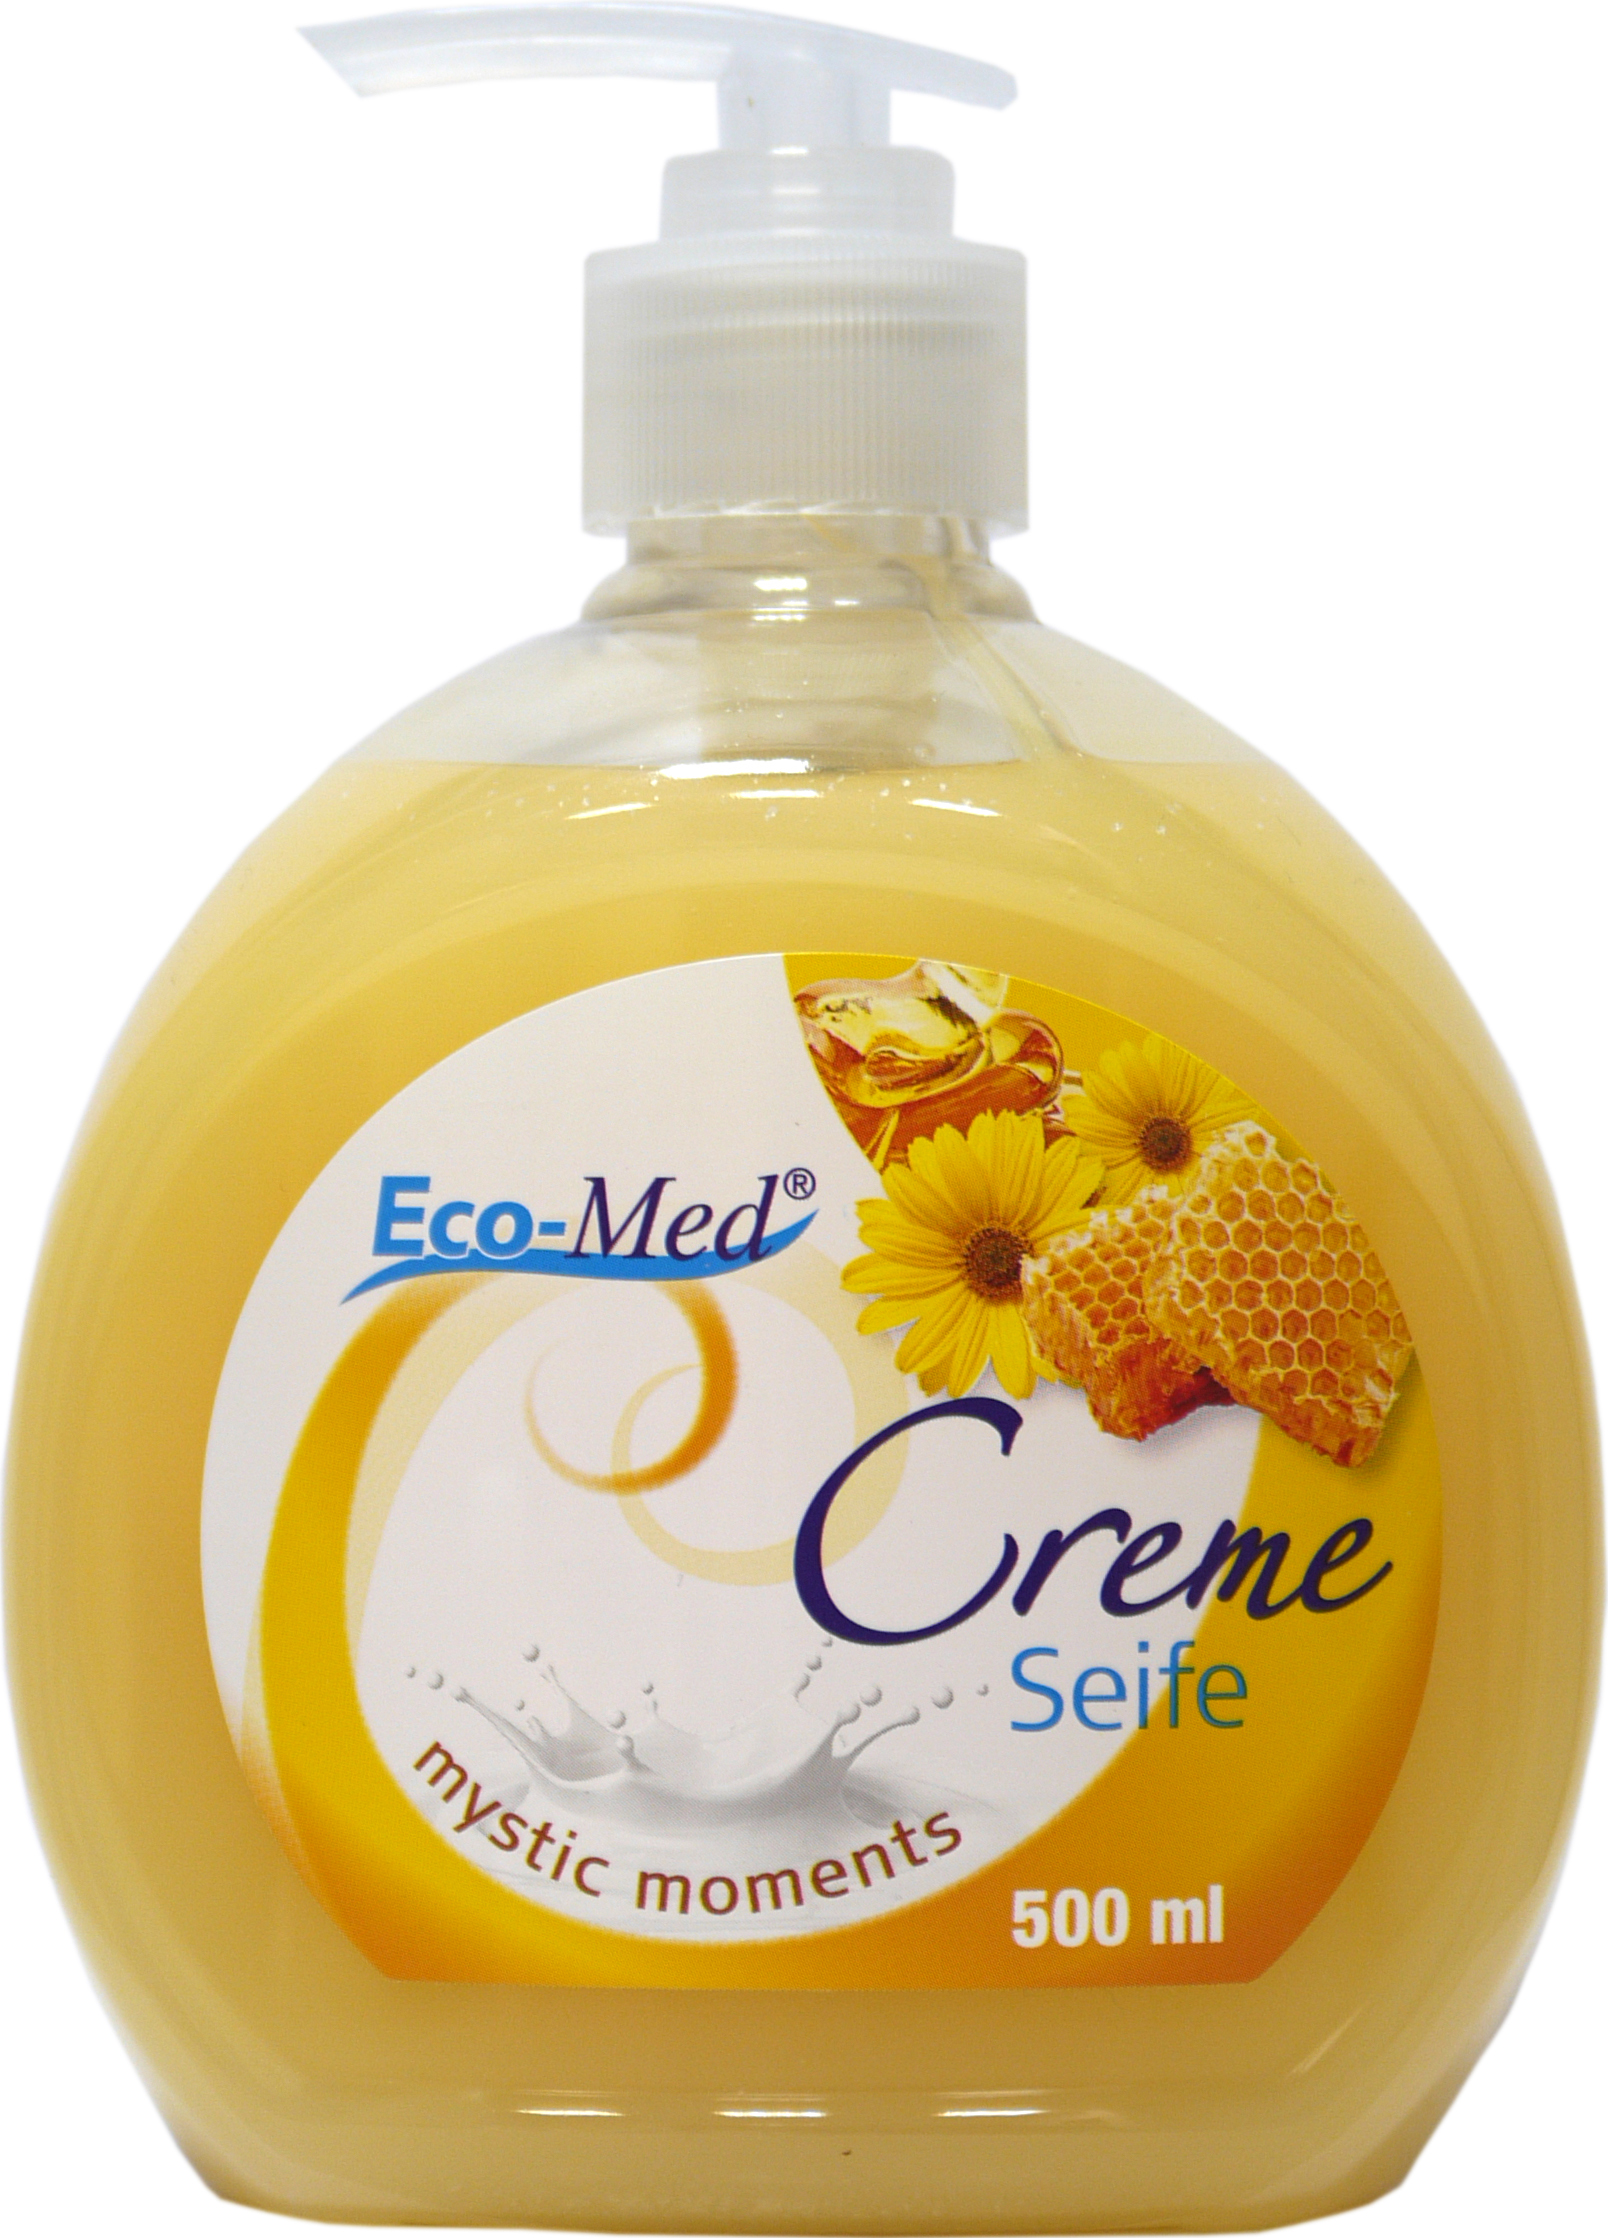 01602 - Eco-Med Cremeseife 500 ml Mystic Moments